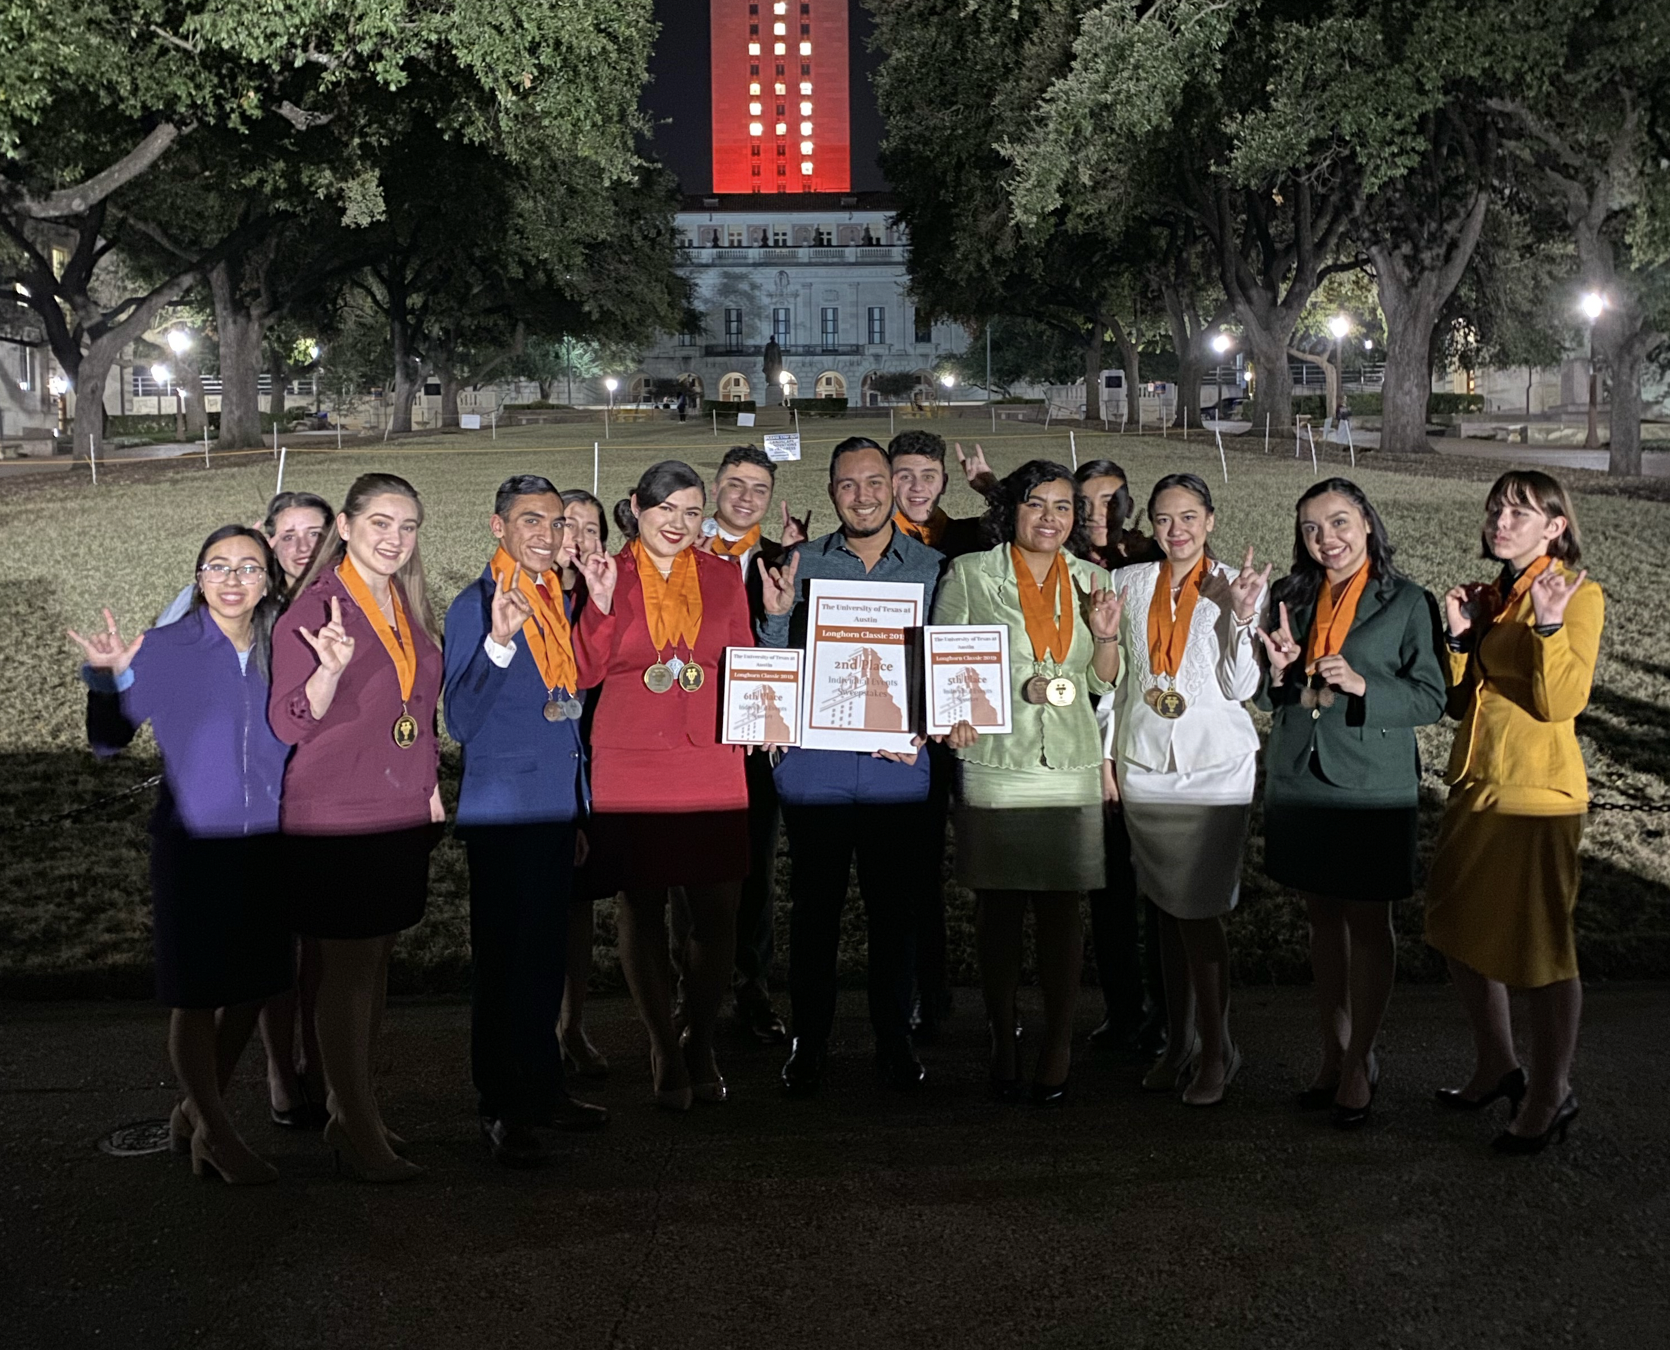 Harlingen High School wins sweepstakes in speech and debate competition